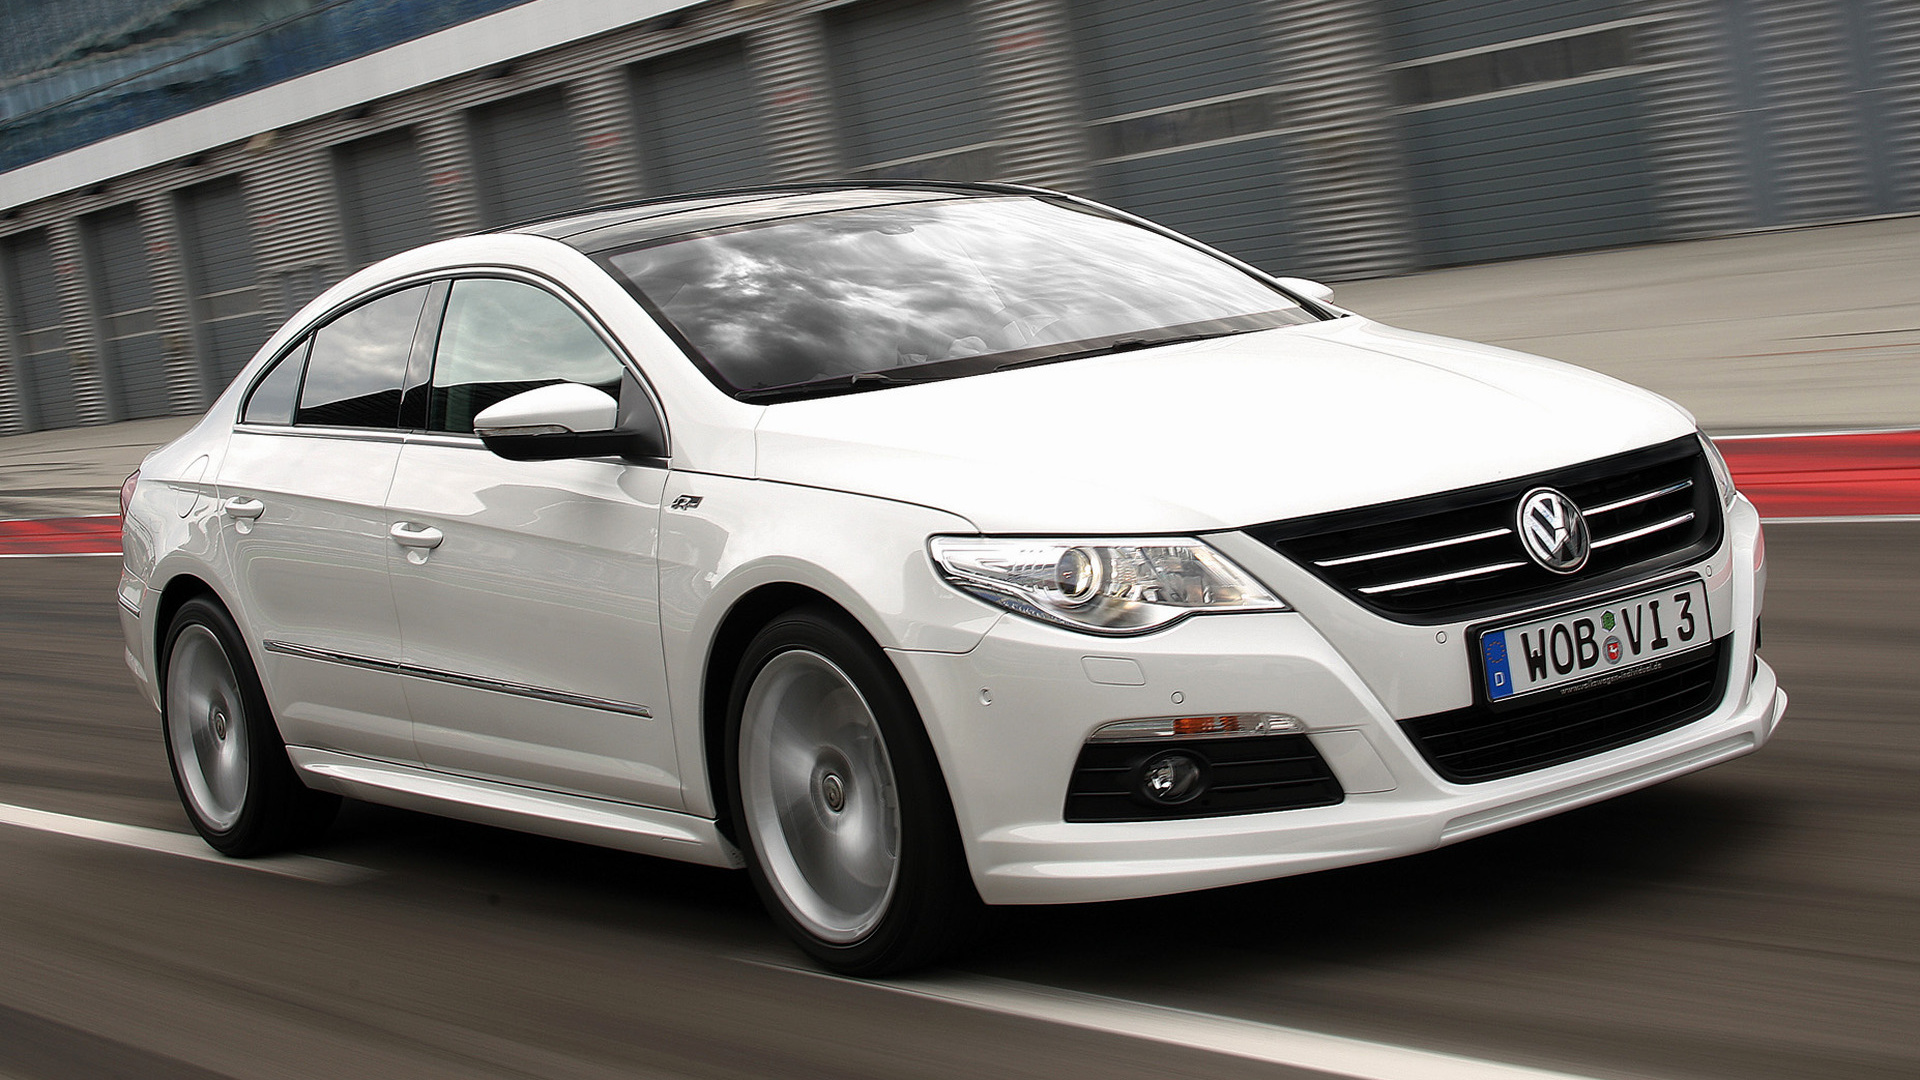 Who Makes Cadillac >> Volkswagen Passat CC R-Line (2009) Wallpapers and HD ...